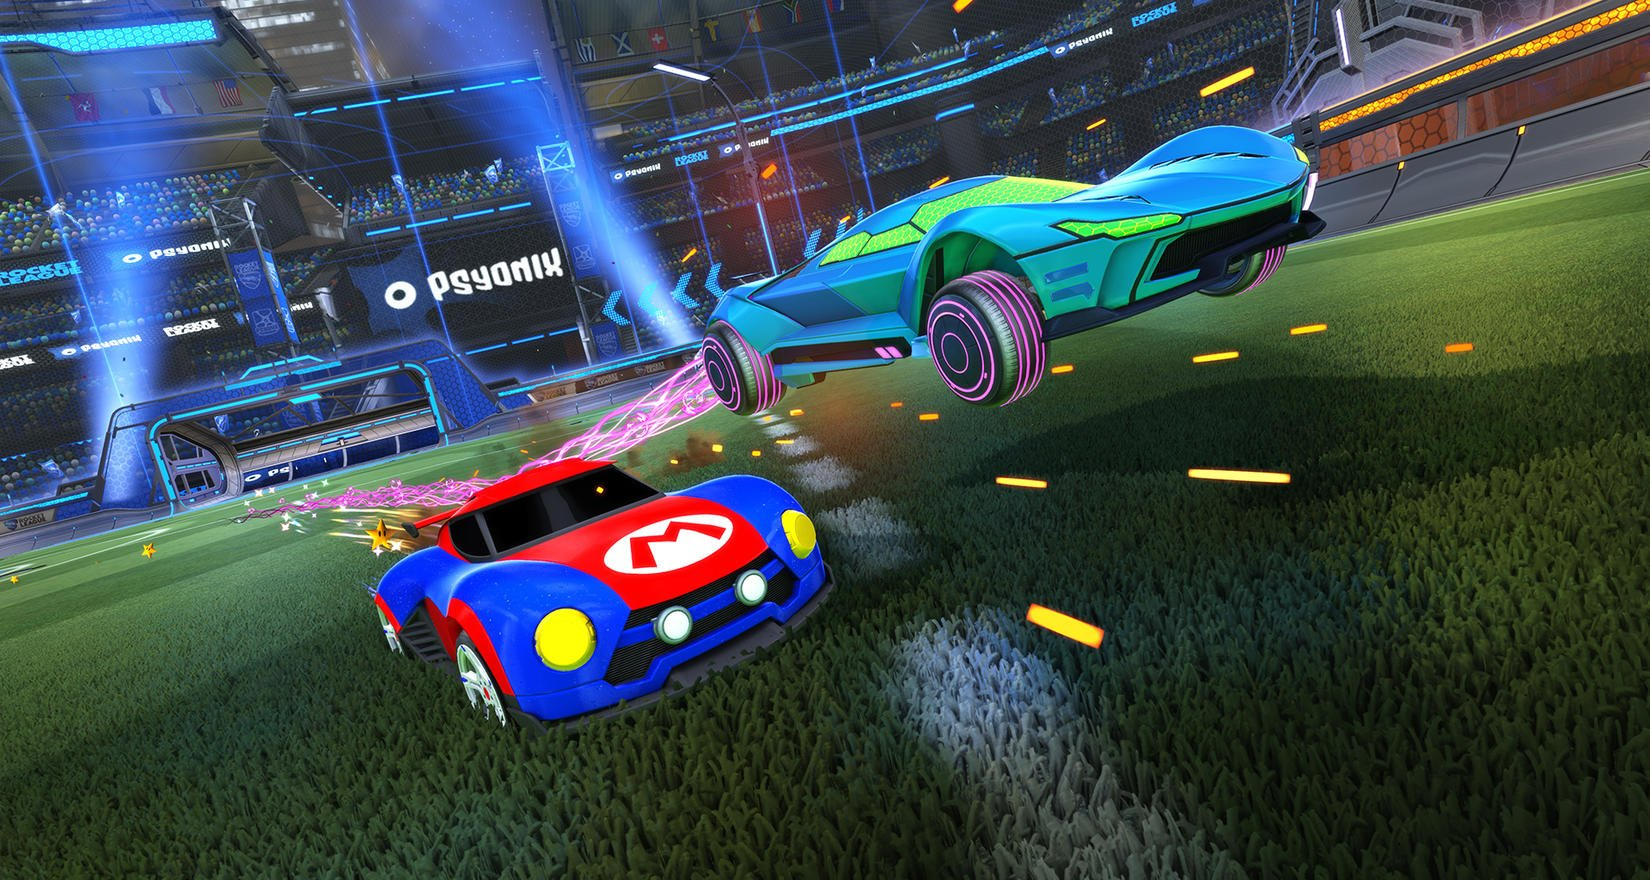 Psyonix is getting ready to completely overhaul Rocket League's visuals on Switch screenshot